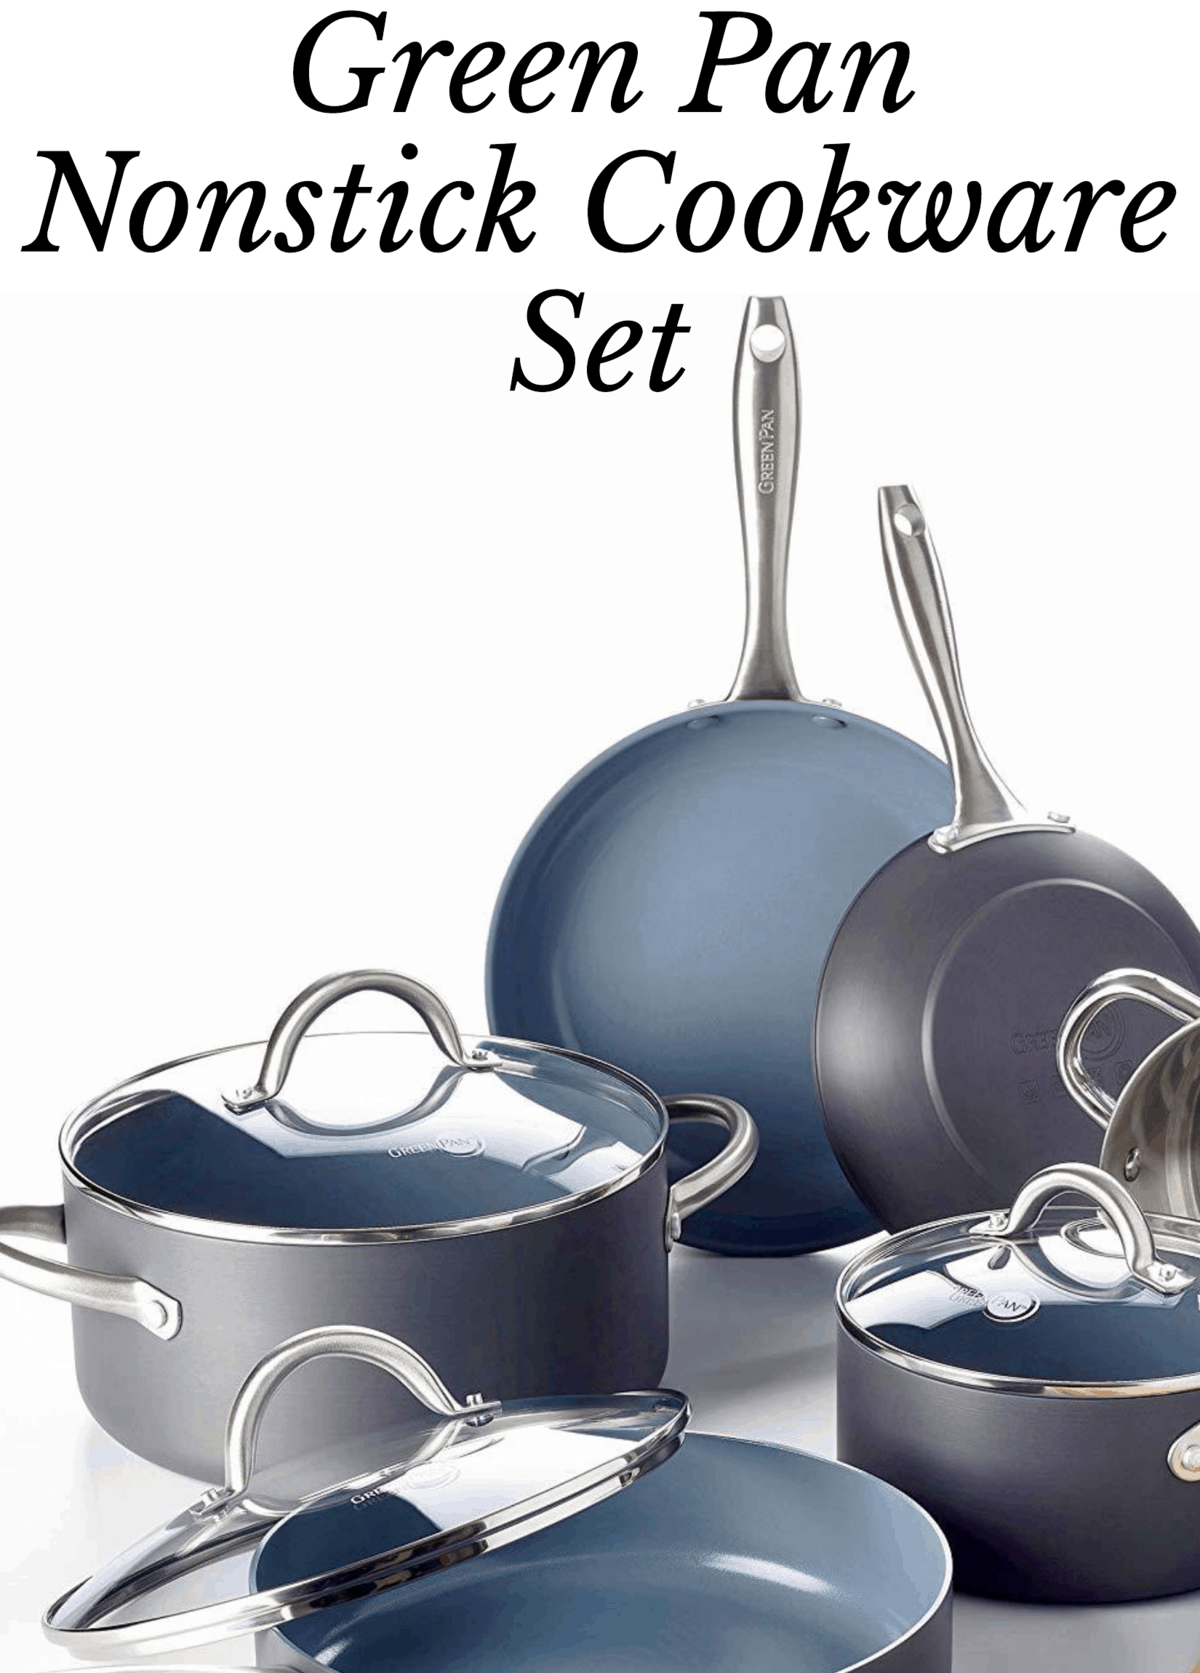 Green Pan Nonstick Cookware Set